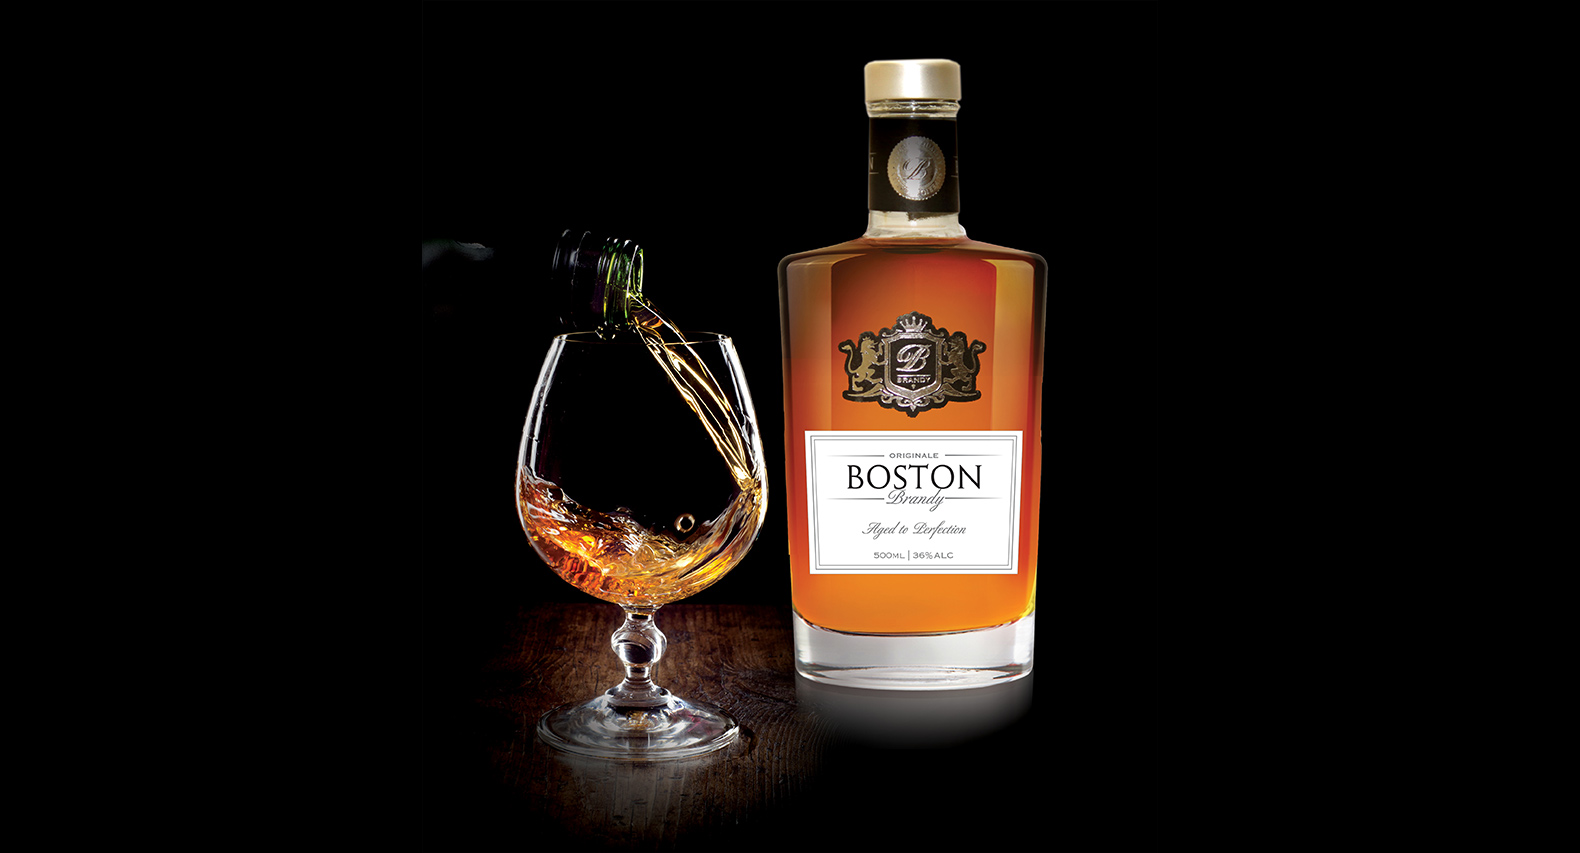 Boston Brandy